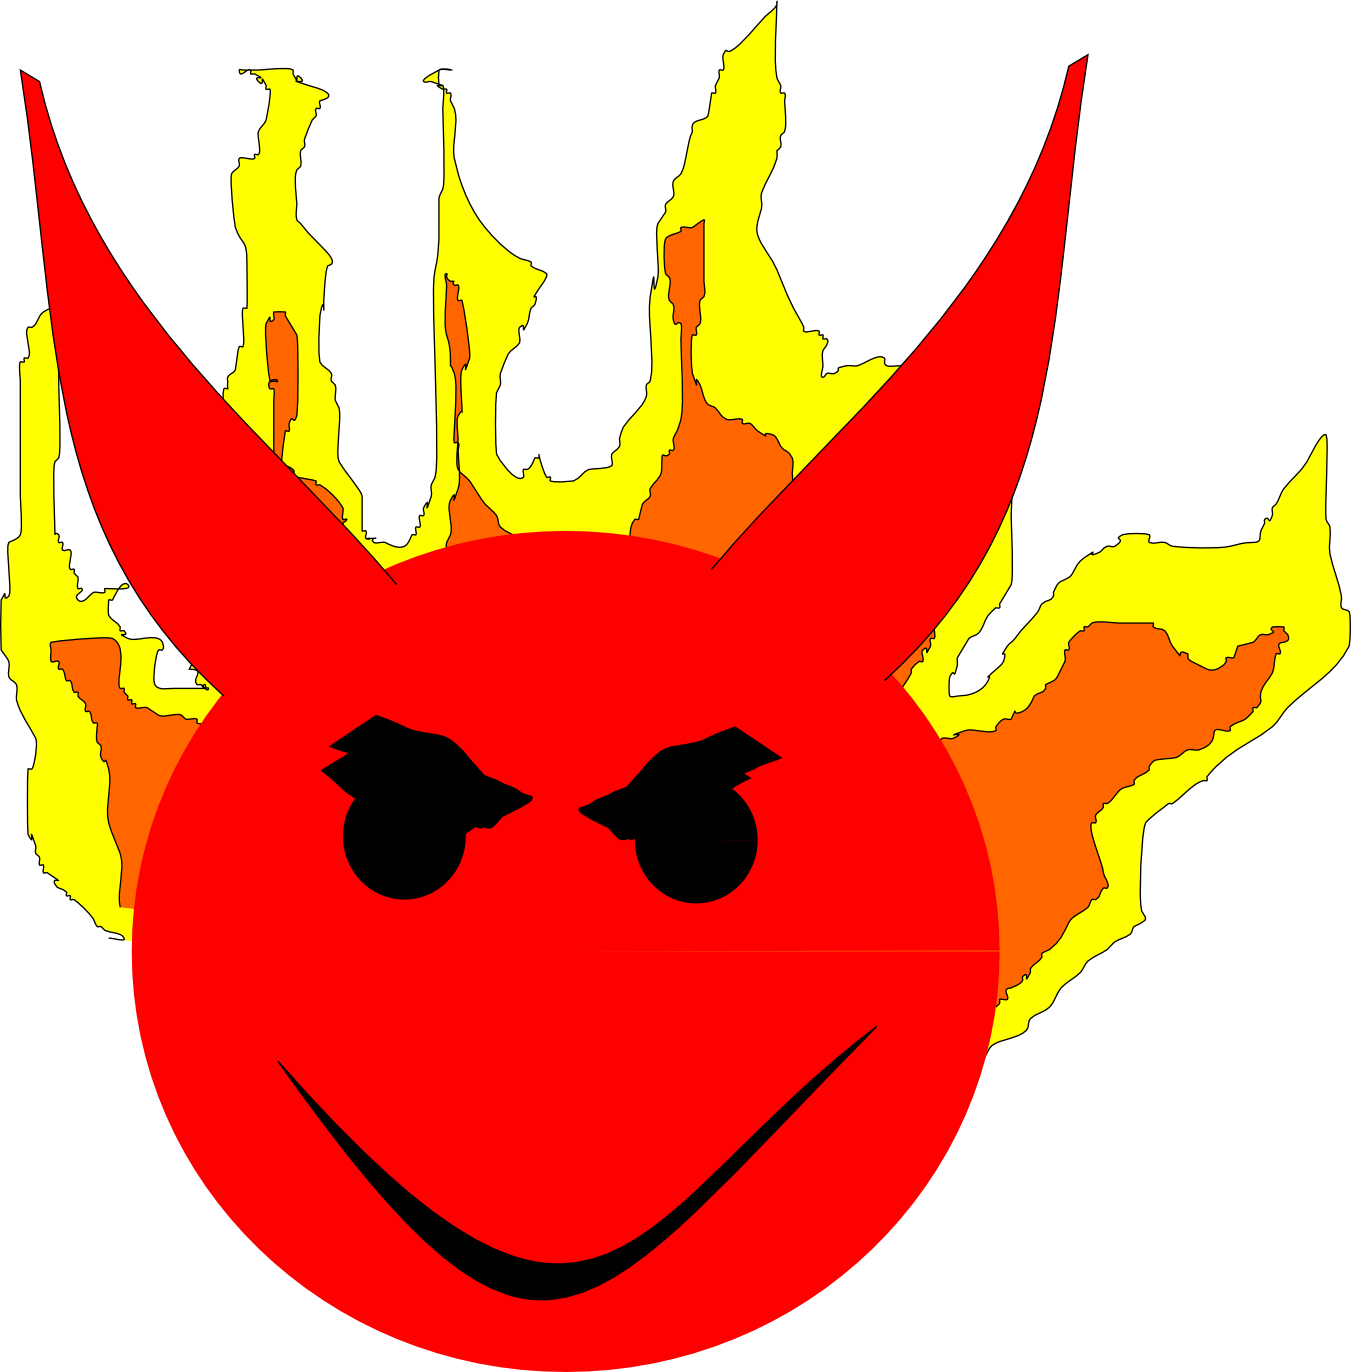 Horn clipart devilish. Free smiley face download